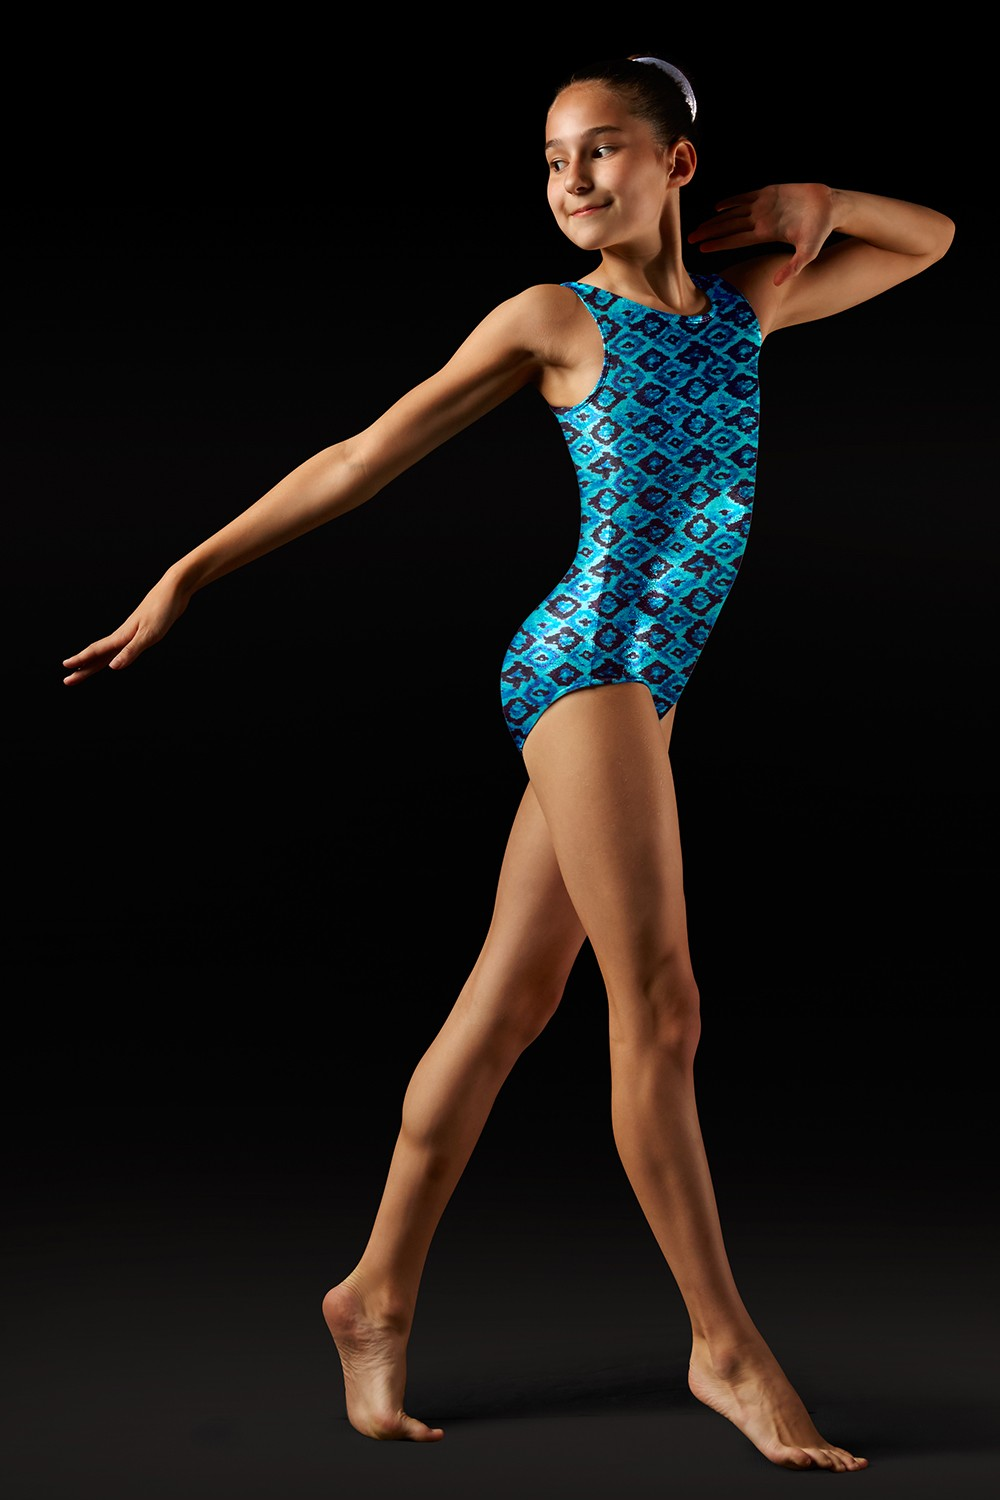 Aztec Print Tank Leotard - Girls Girl's Gymnastics Leotards